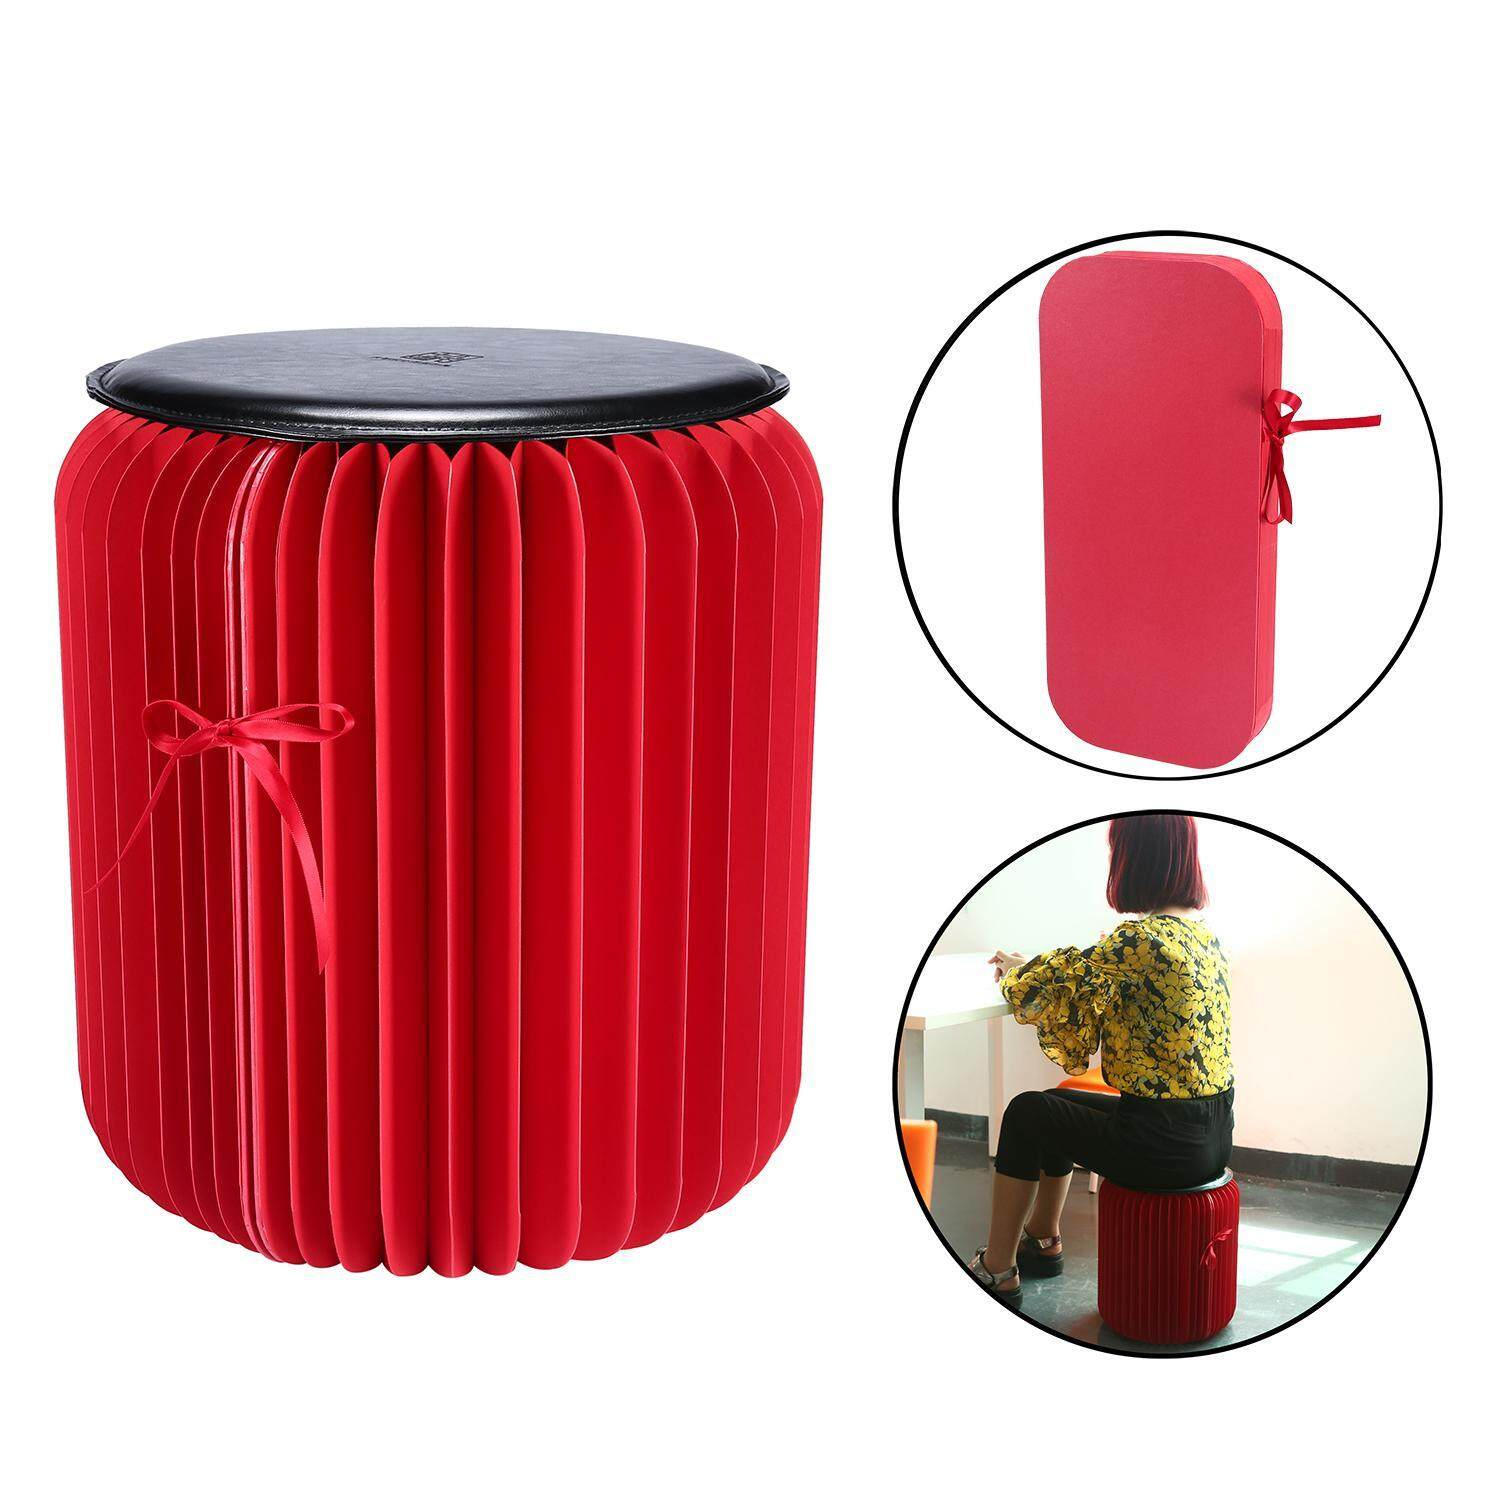 LingTud Flexible Paper Stool,Portable Home Furniture Paper Design Folding Chair with 1pcs Leather Pad,Red+Black Large Size - intl